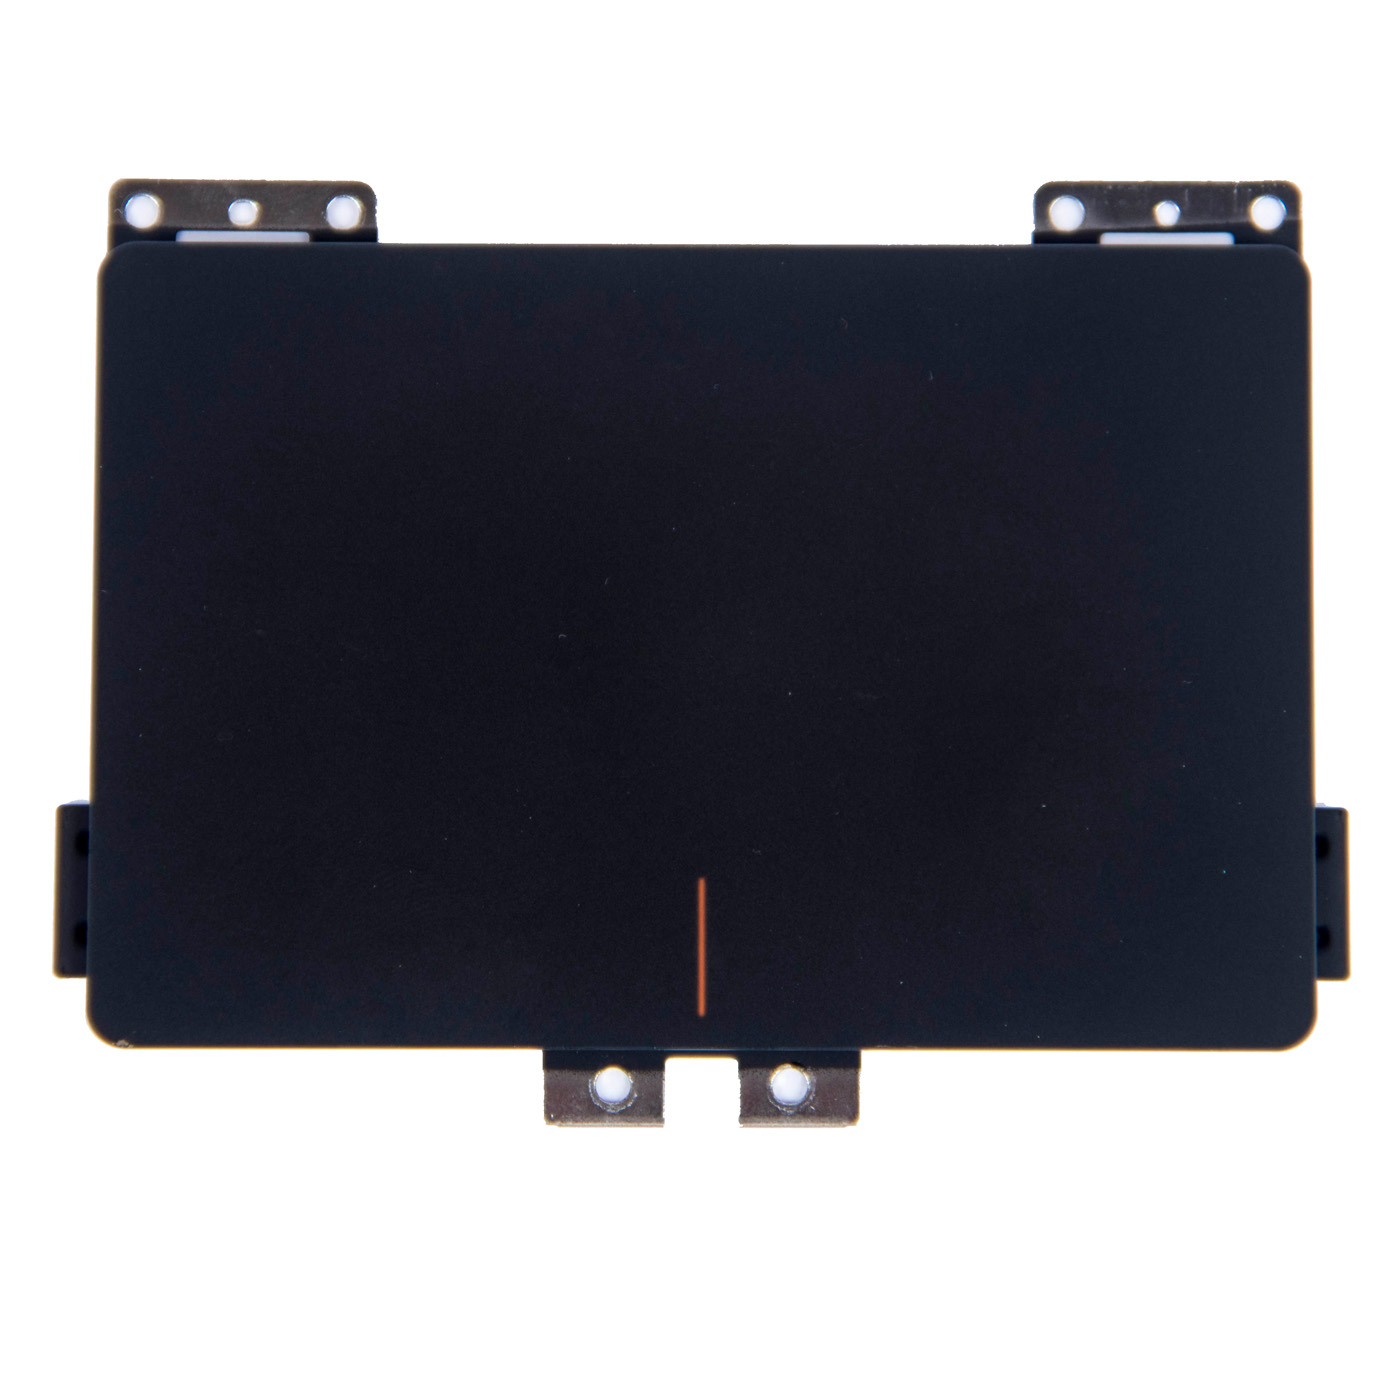 Touchpad Lenovo IdeaPad YOGA 3 PRO 13 black TM 02714-001